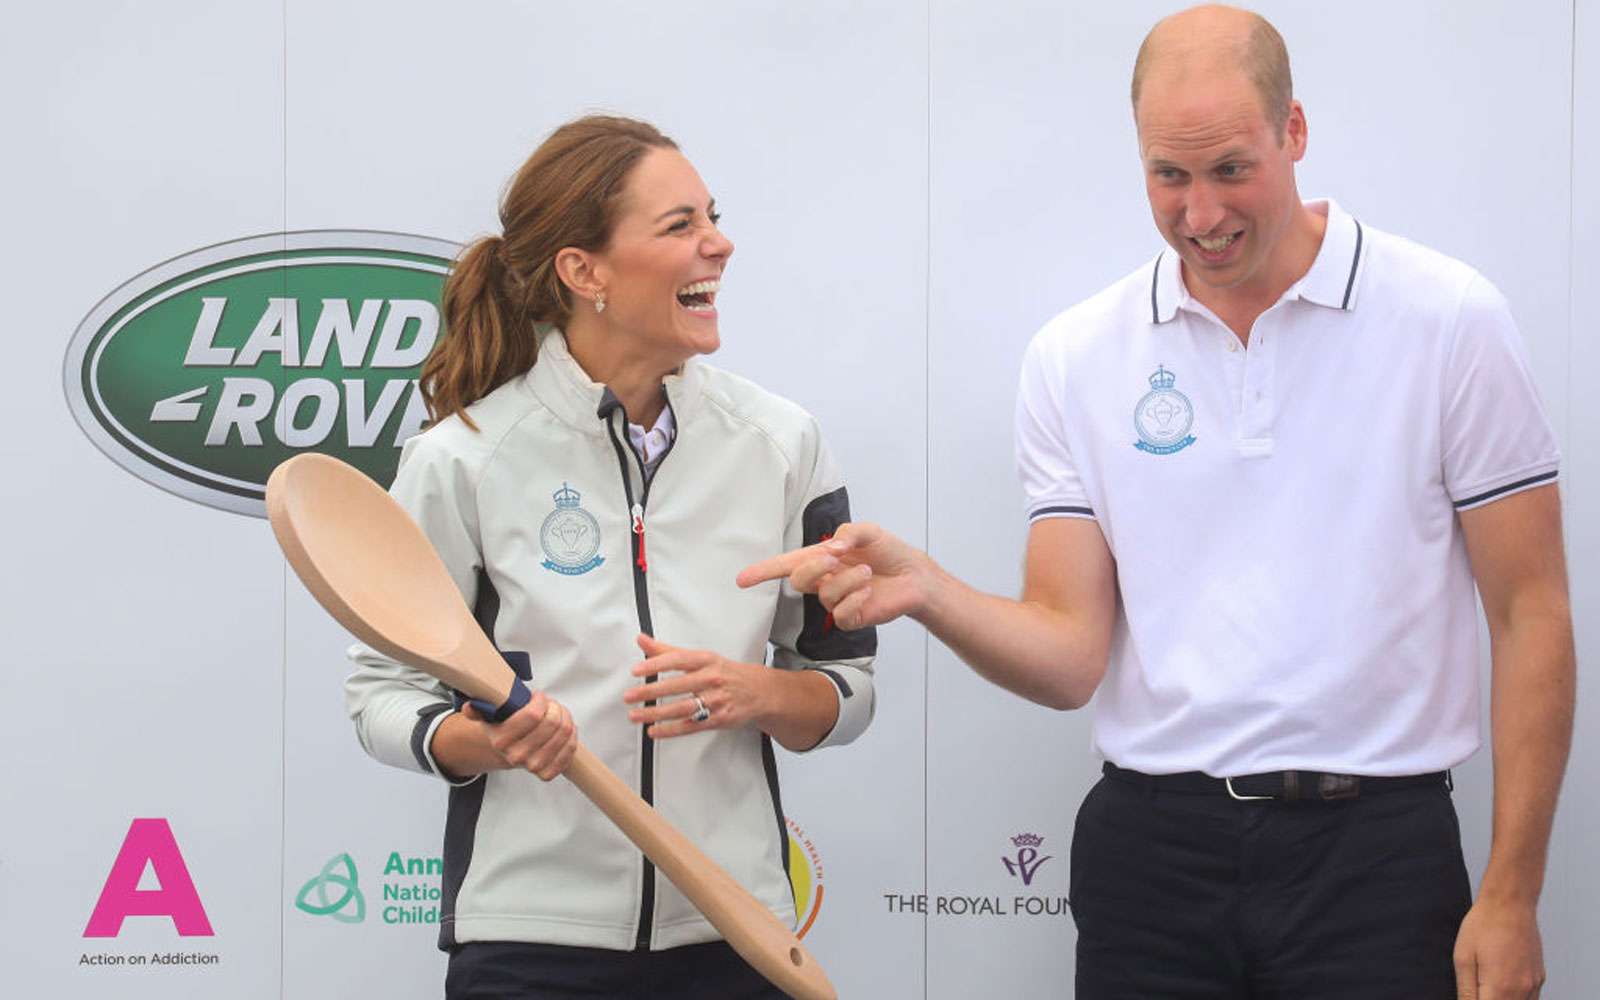 The Duke And Duchess Of Cambridge Take Part In The King's Cup Regatta